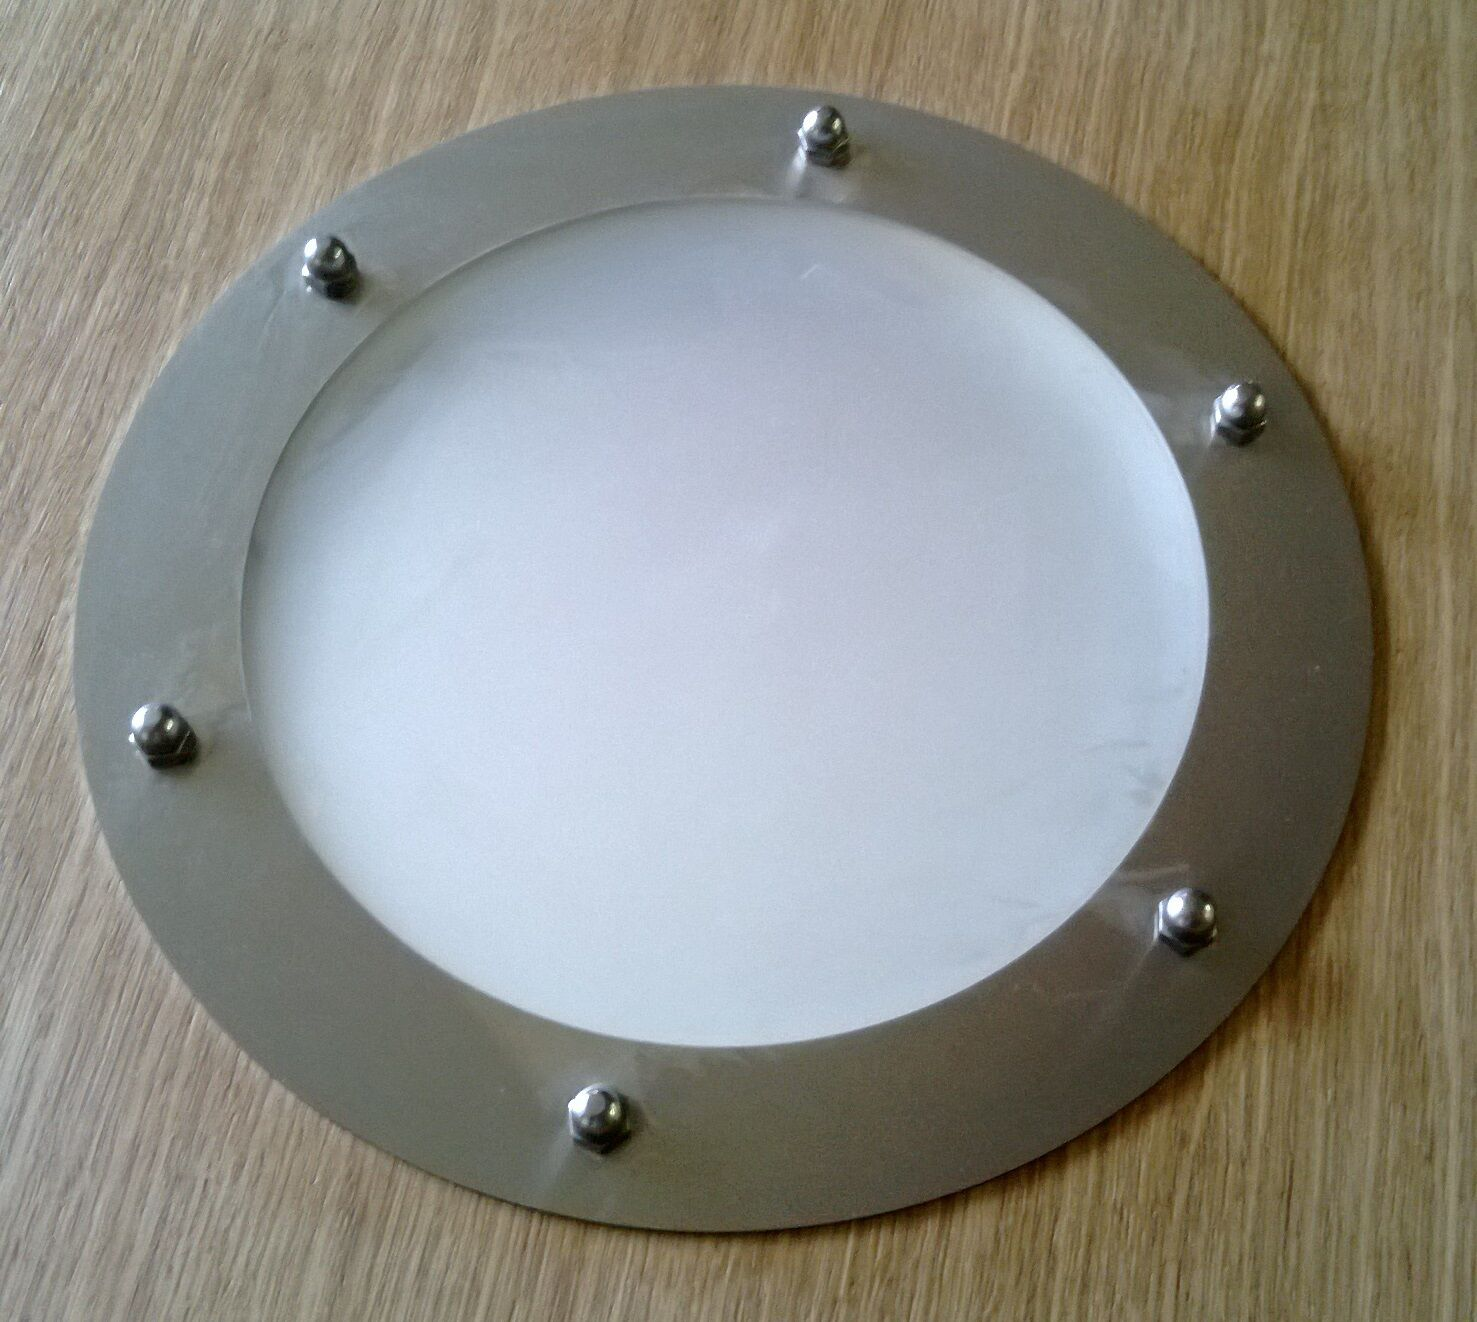 PORTHOLE FOR DOORS STAINLESS STEEL phi 323 mm flat WITHOUT GLASSES